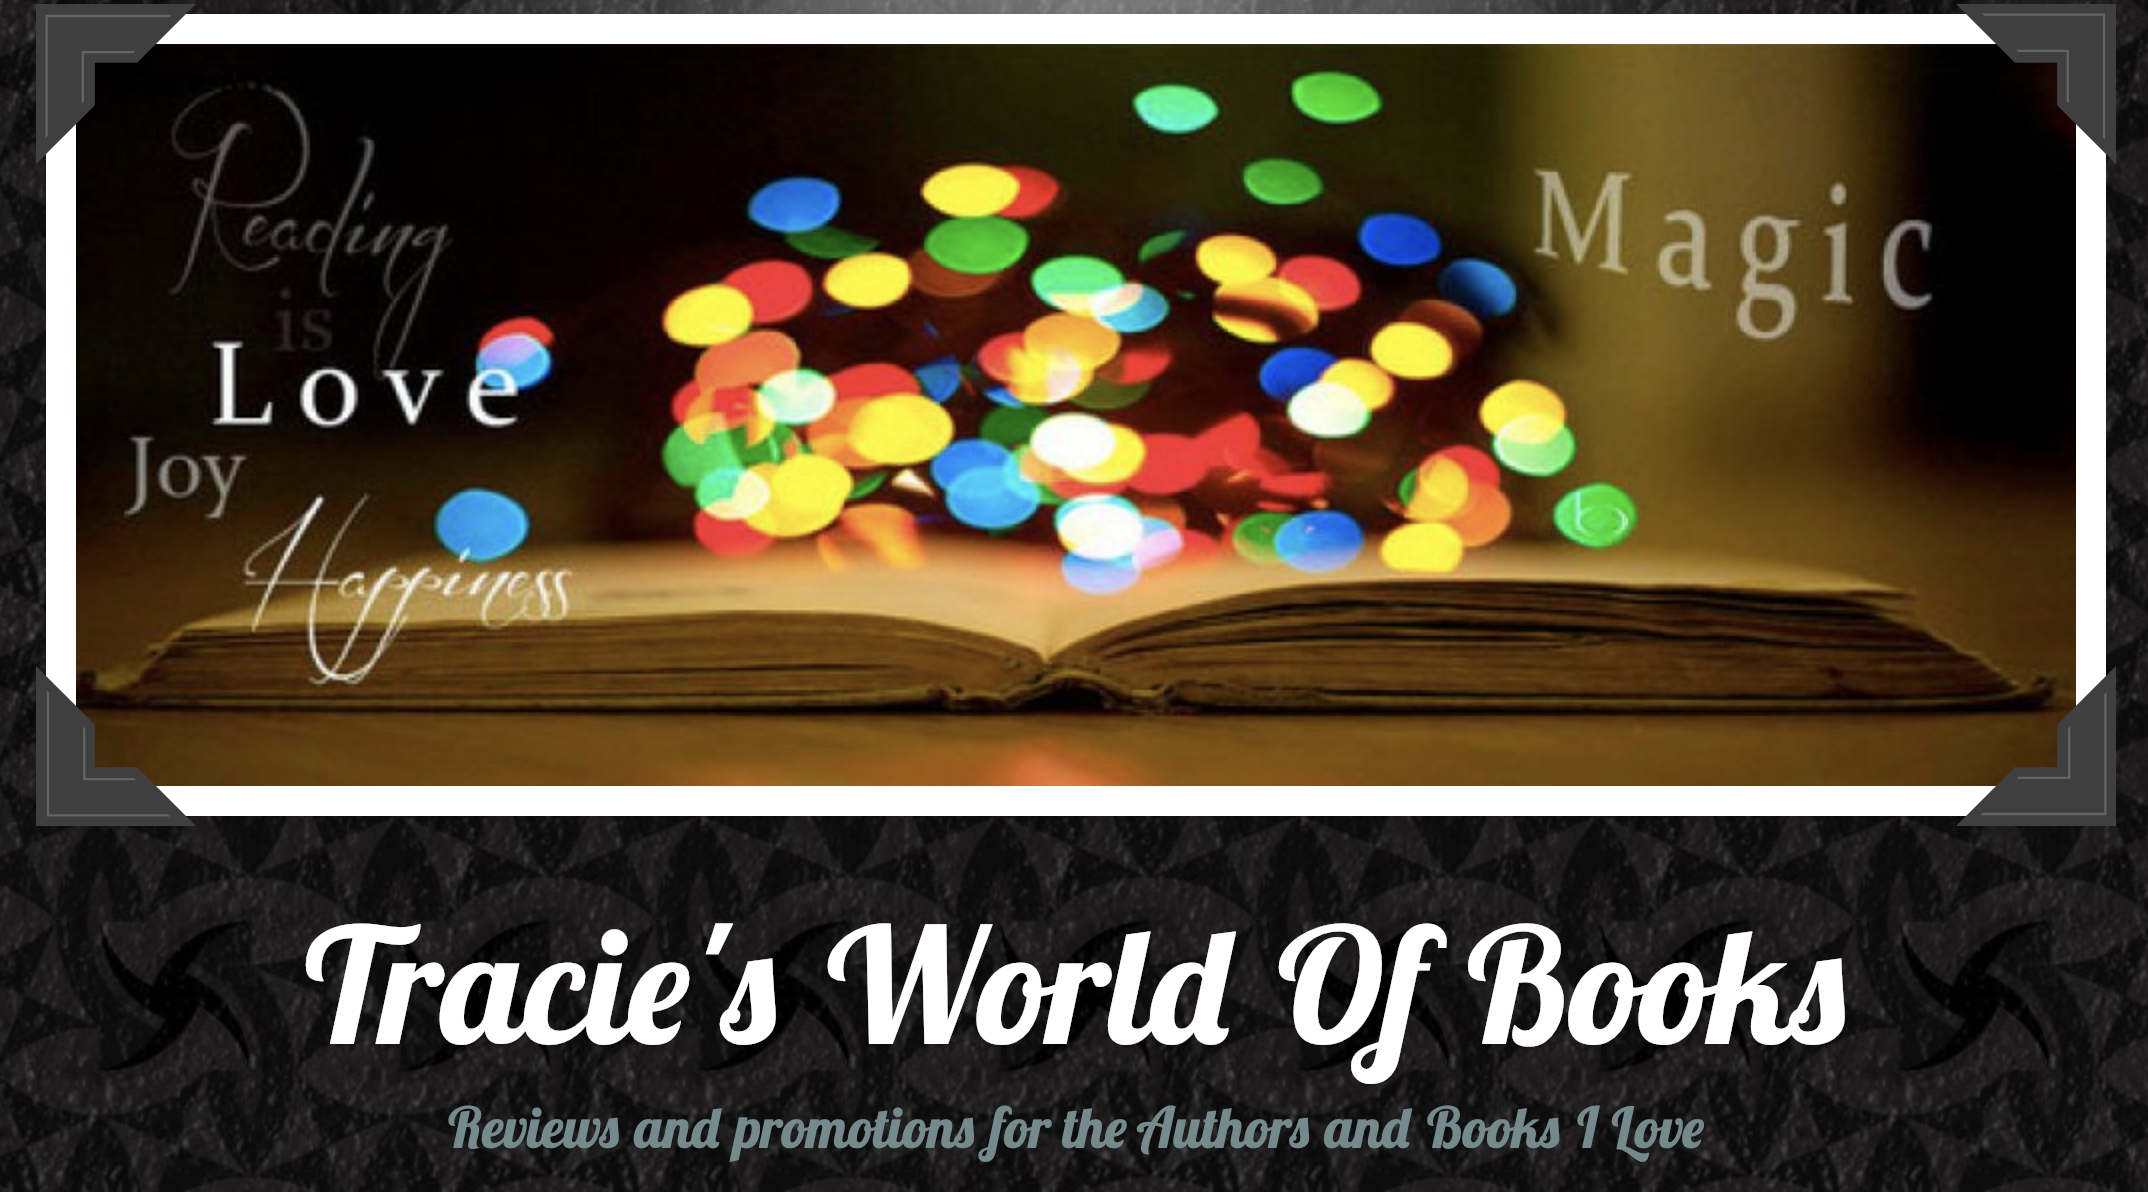 Tracie's World of Books